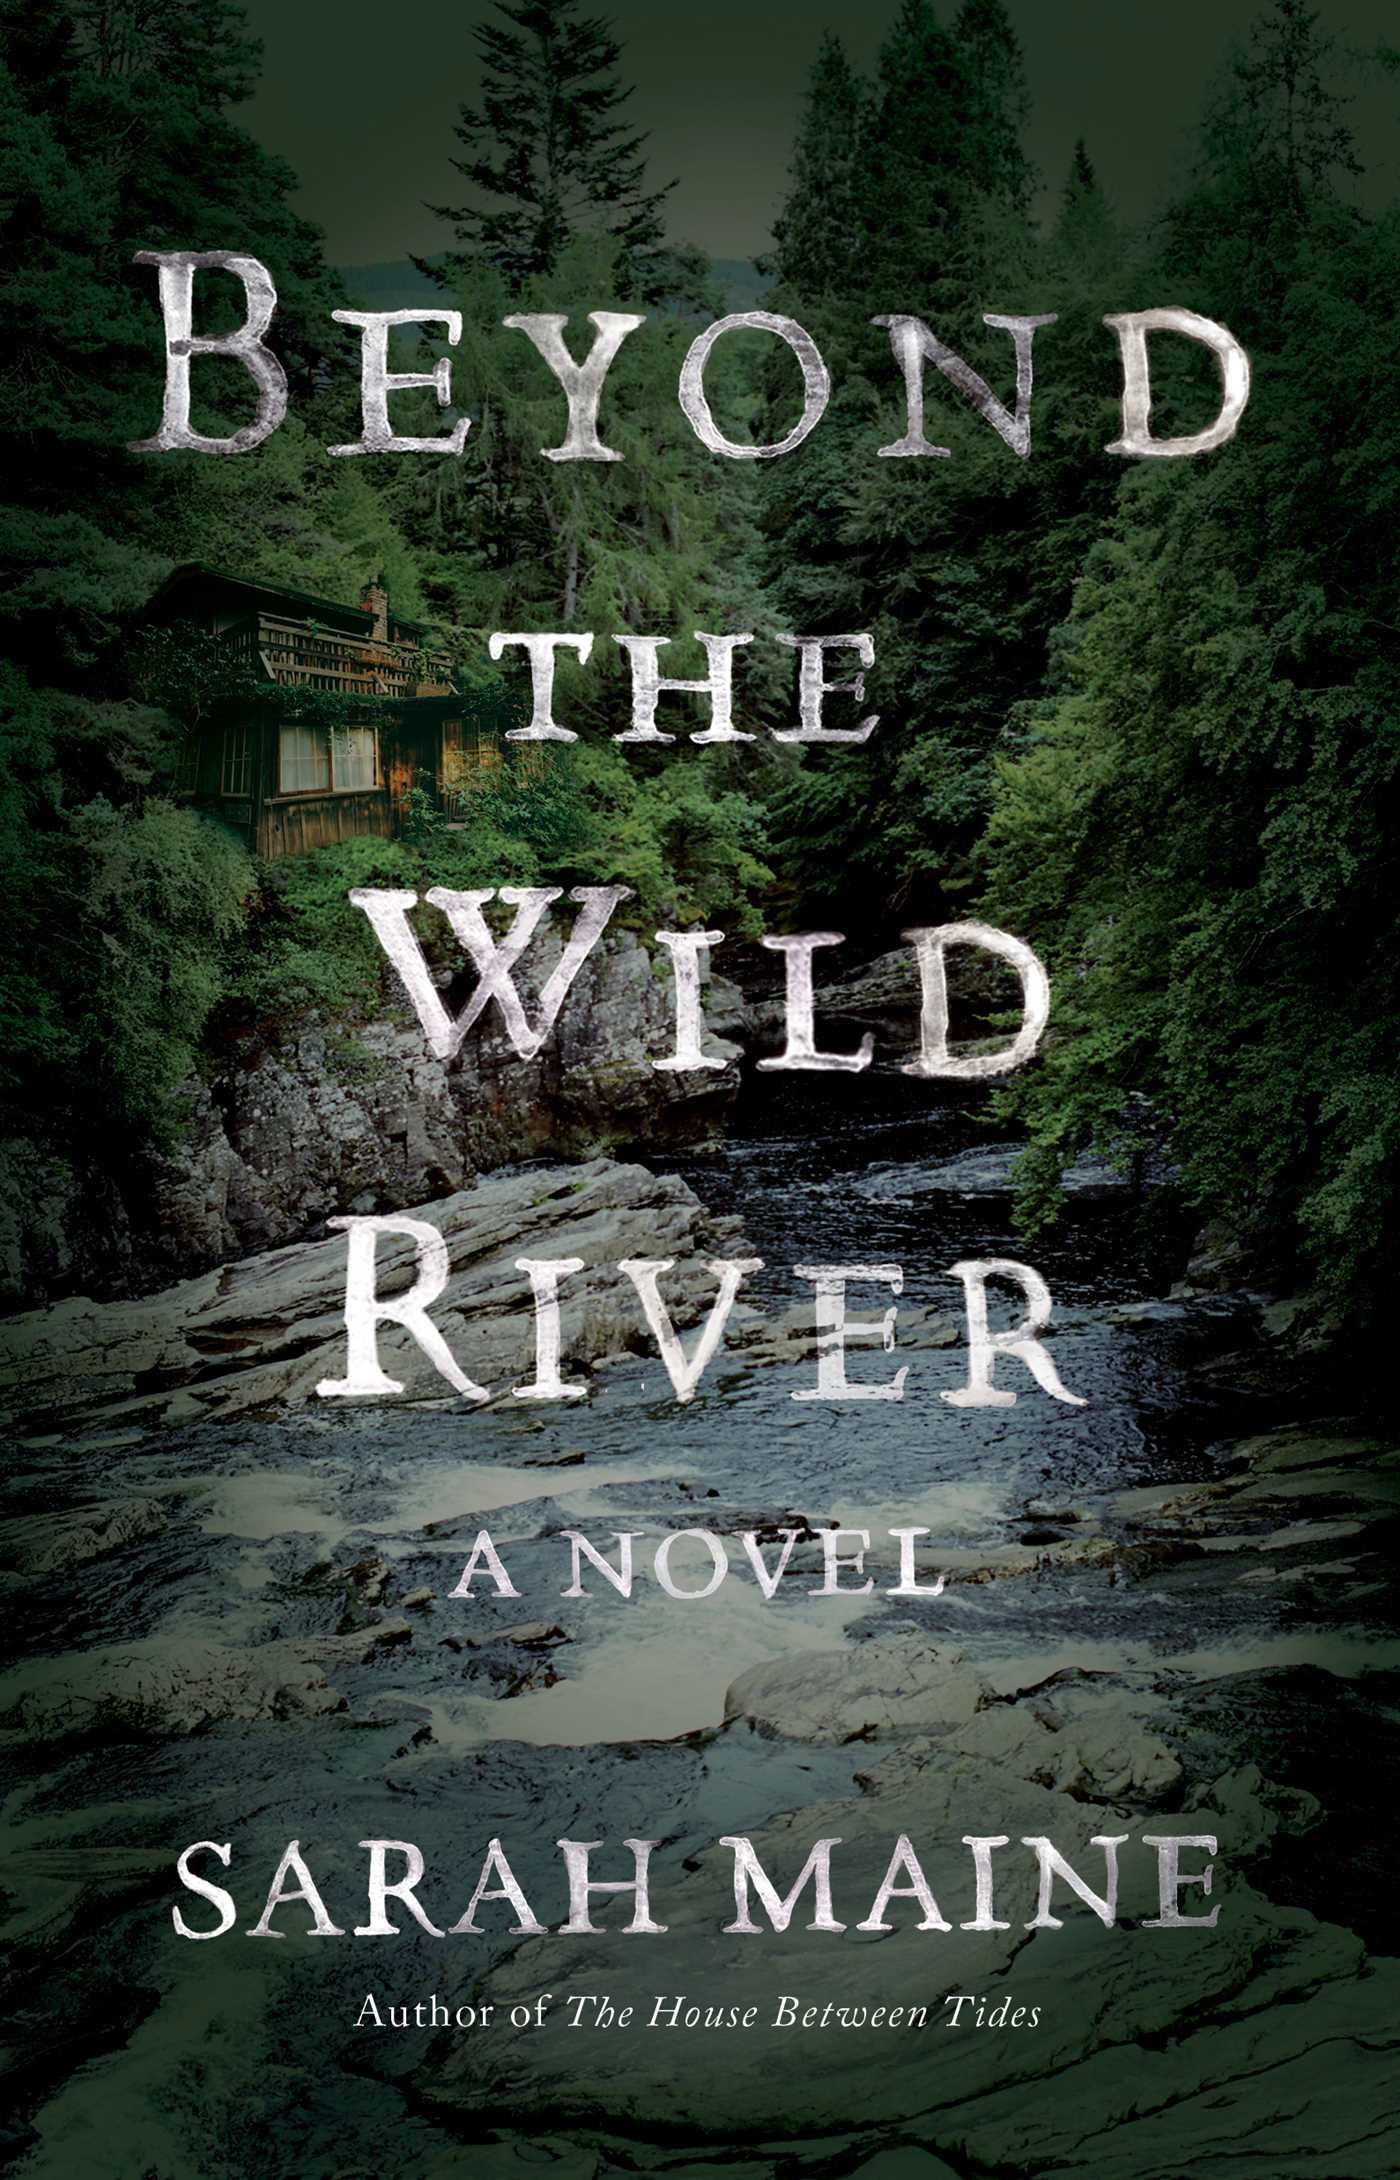 Beyond The Wild River By Sarah Maine | I've Read This | BL | Black Lion Journal | Black Lion